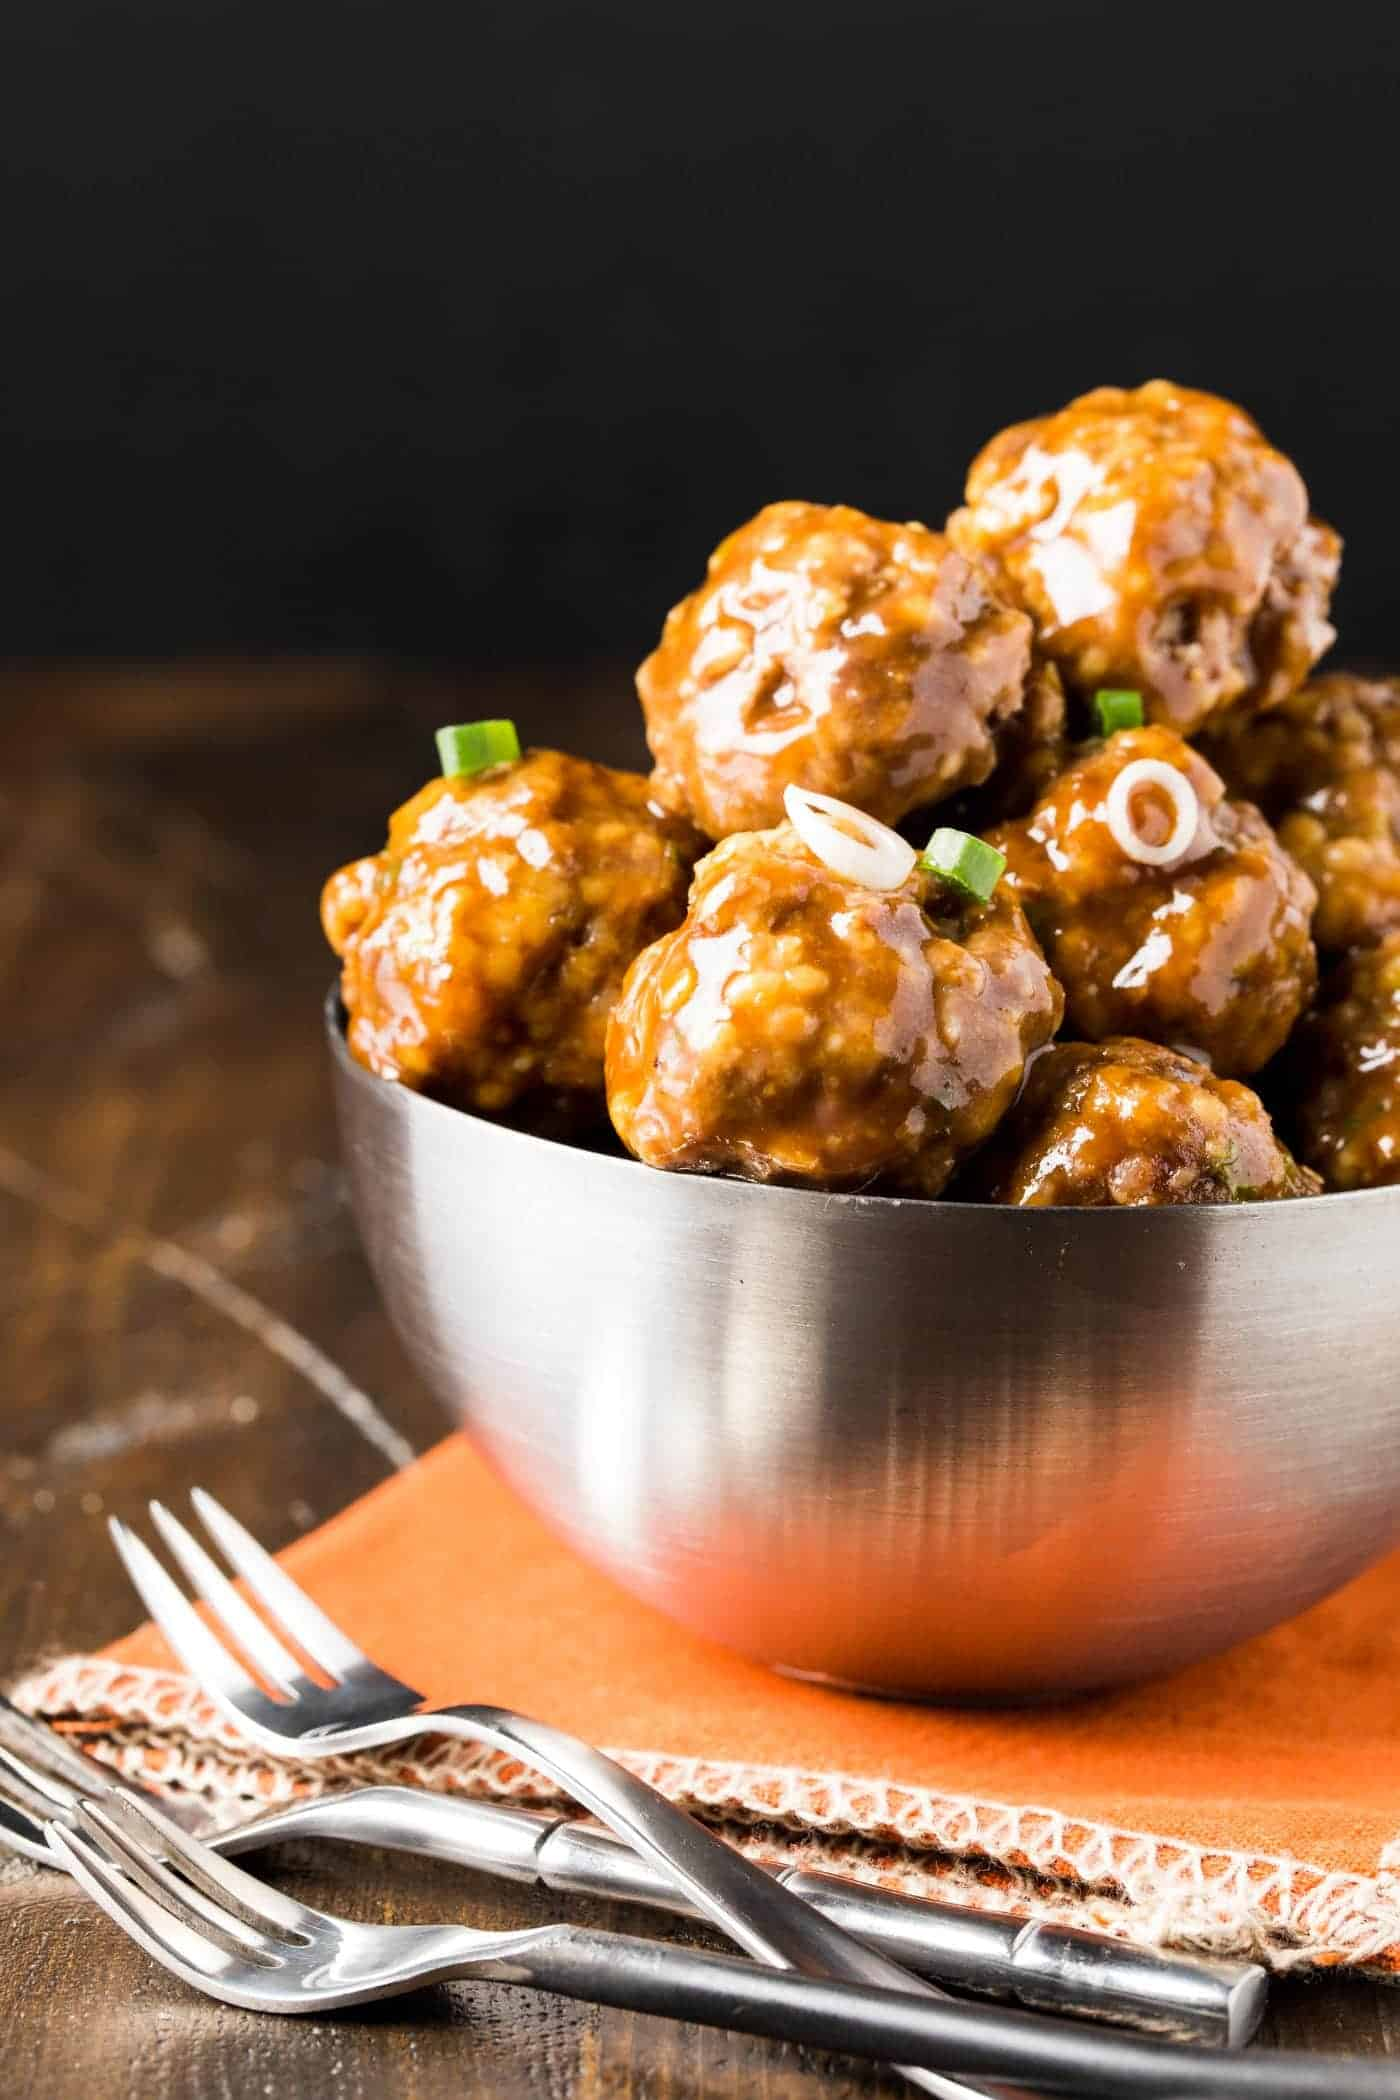 Appetizers don't get much easier than these make ahead Saucy Asian Meatballs! Pop them in the slow cooker to keep them warm all night long.